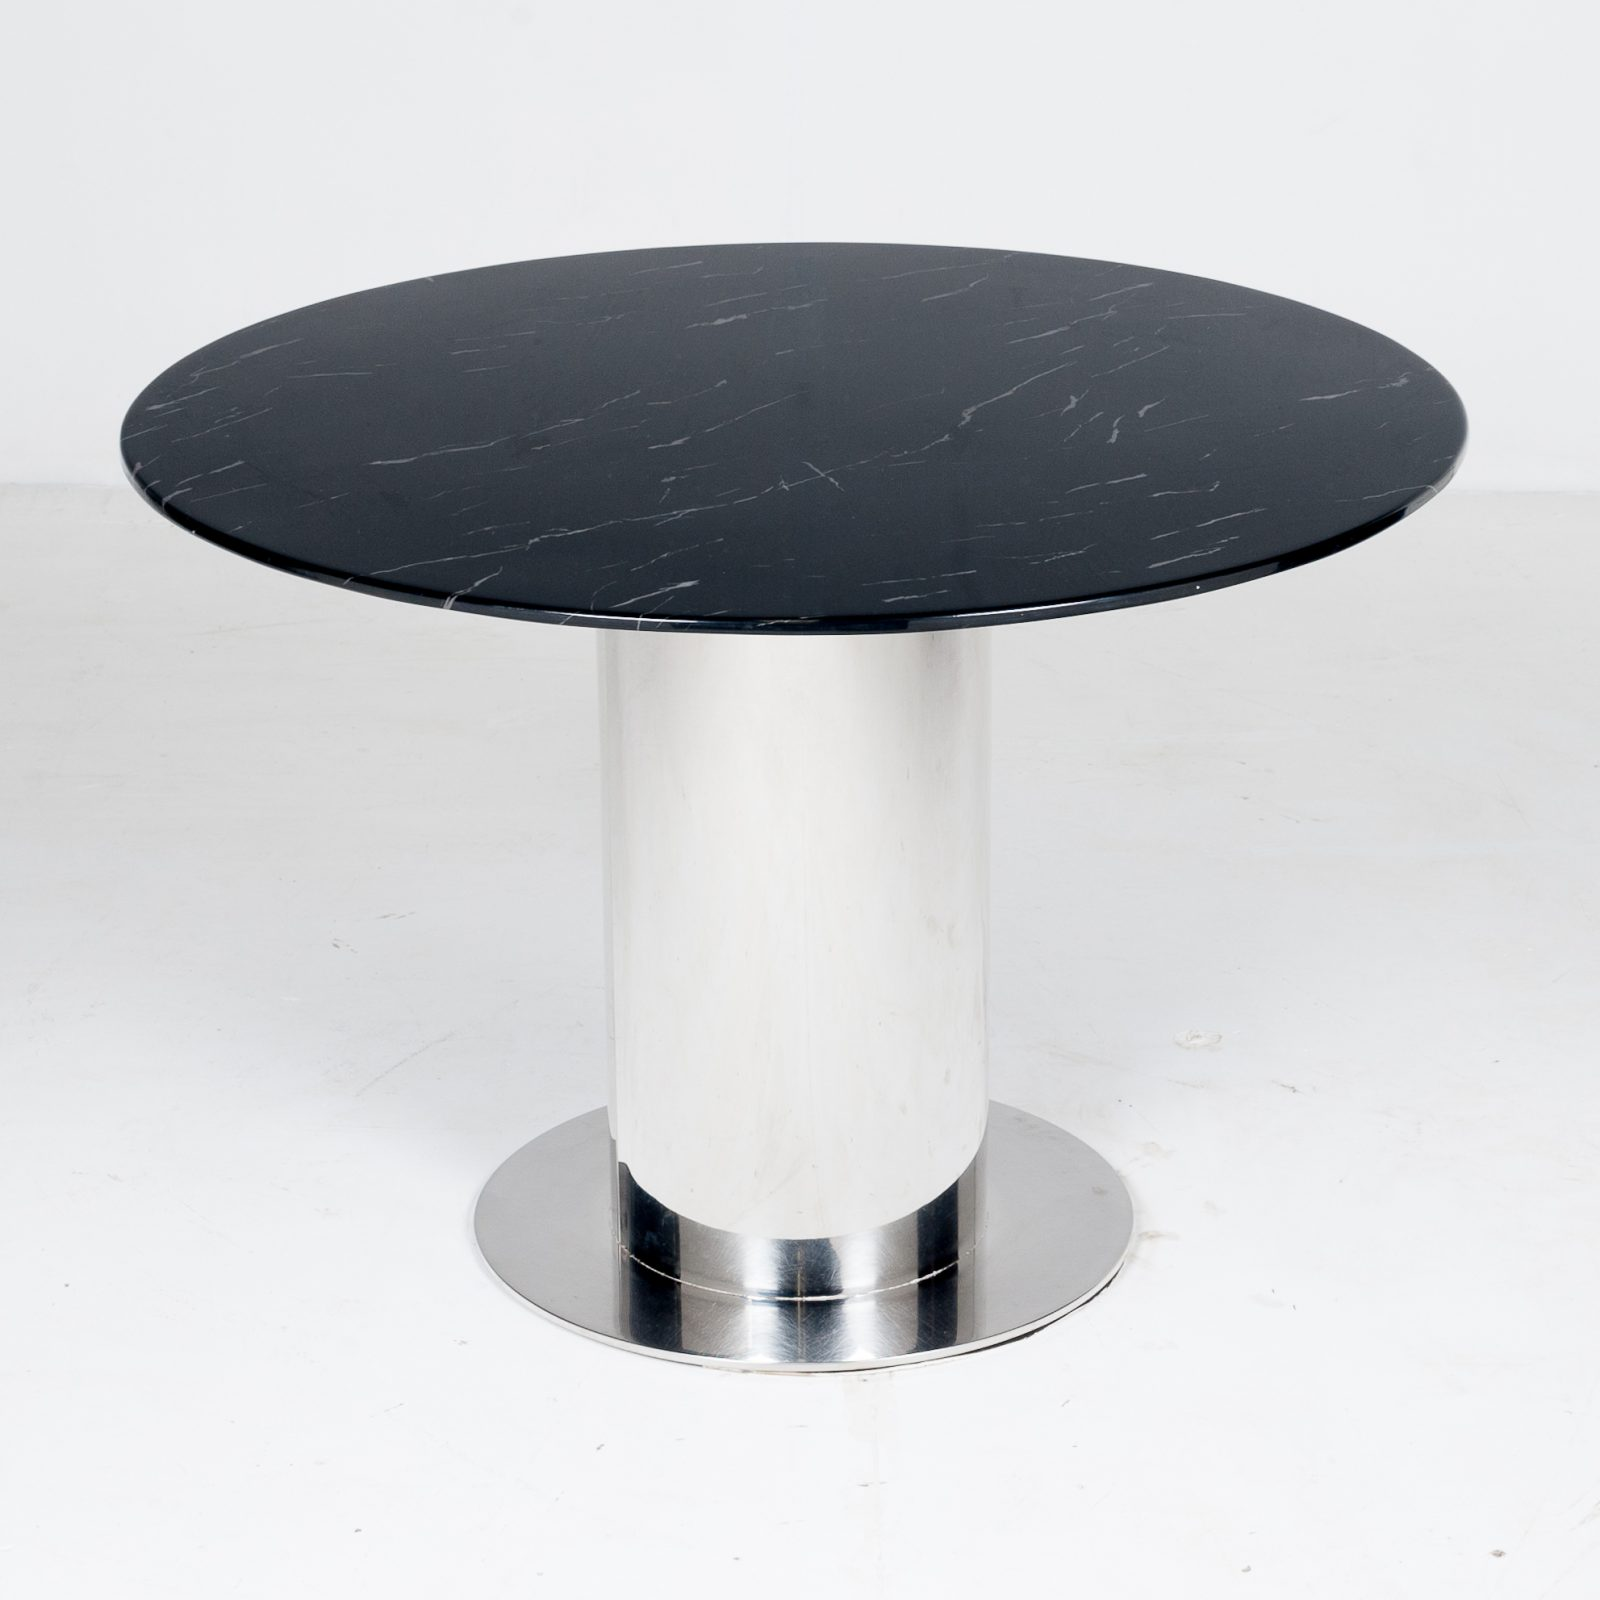 Round Dining Table With Marble Top And Chrome Base In The Style Of Ettore Sottsass, 1980s, The Netherlands 2